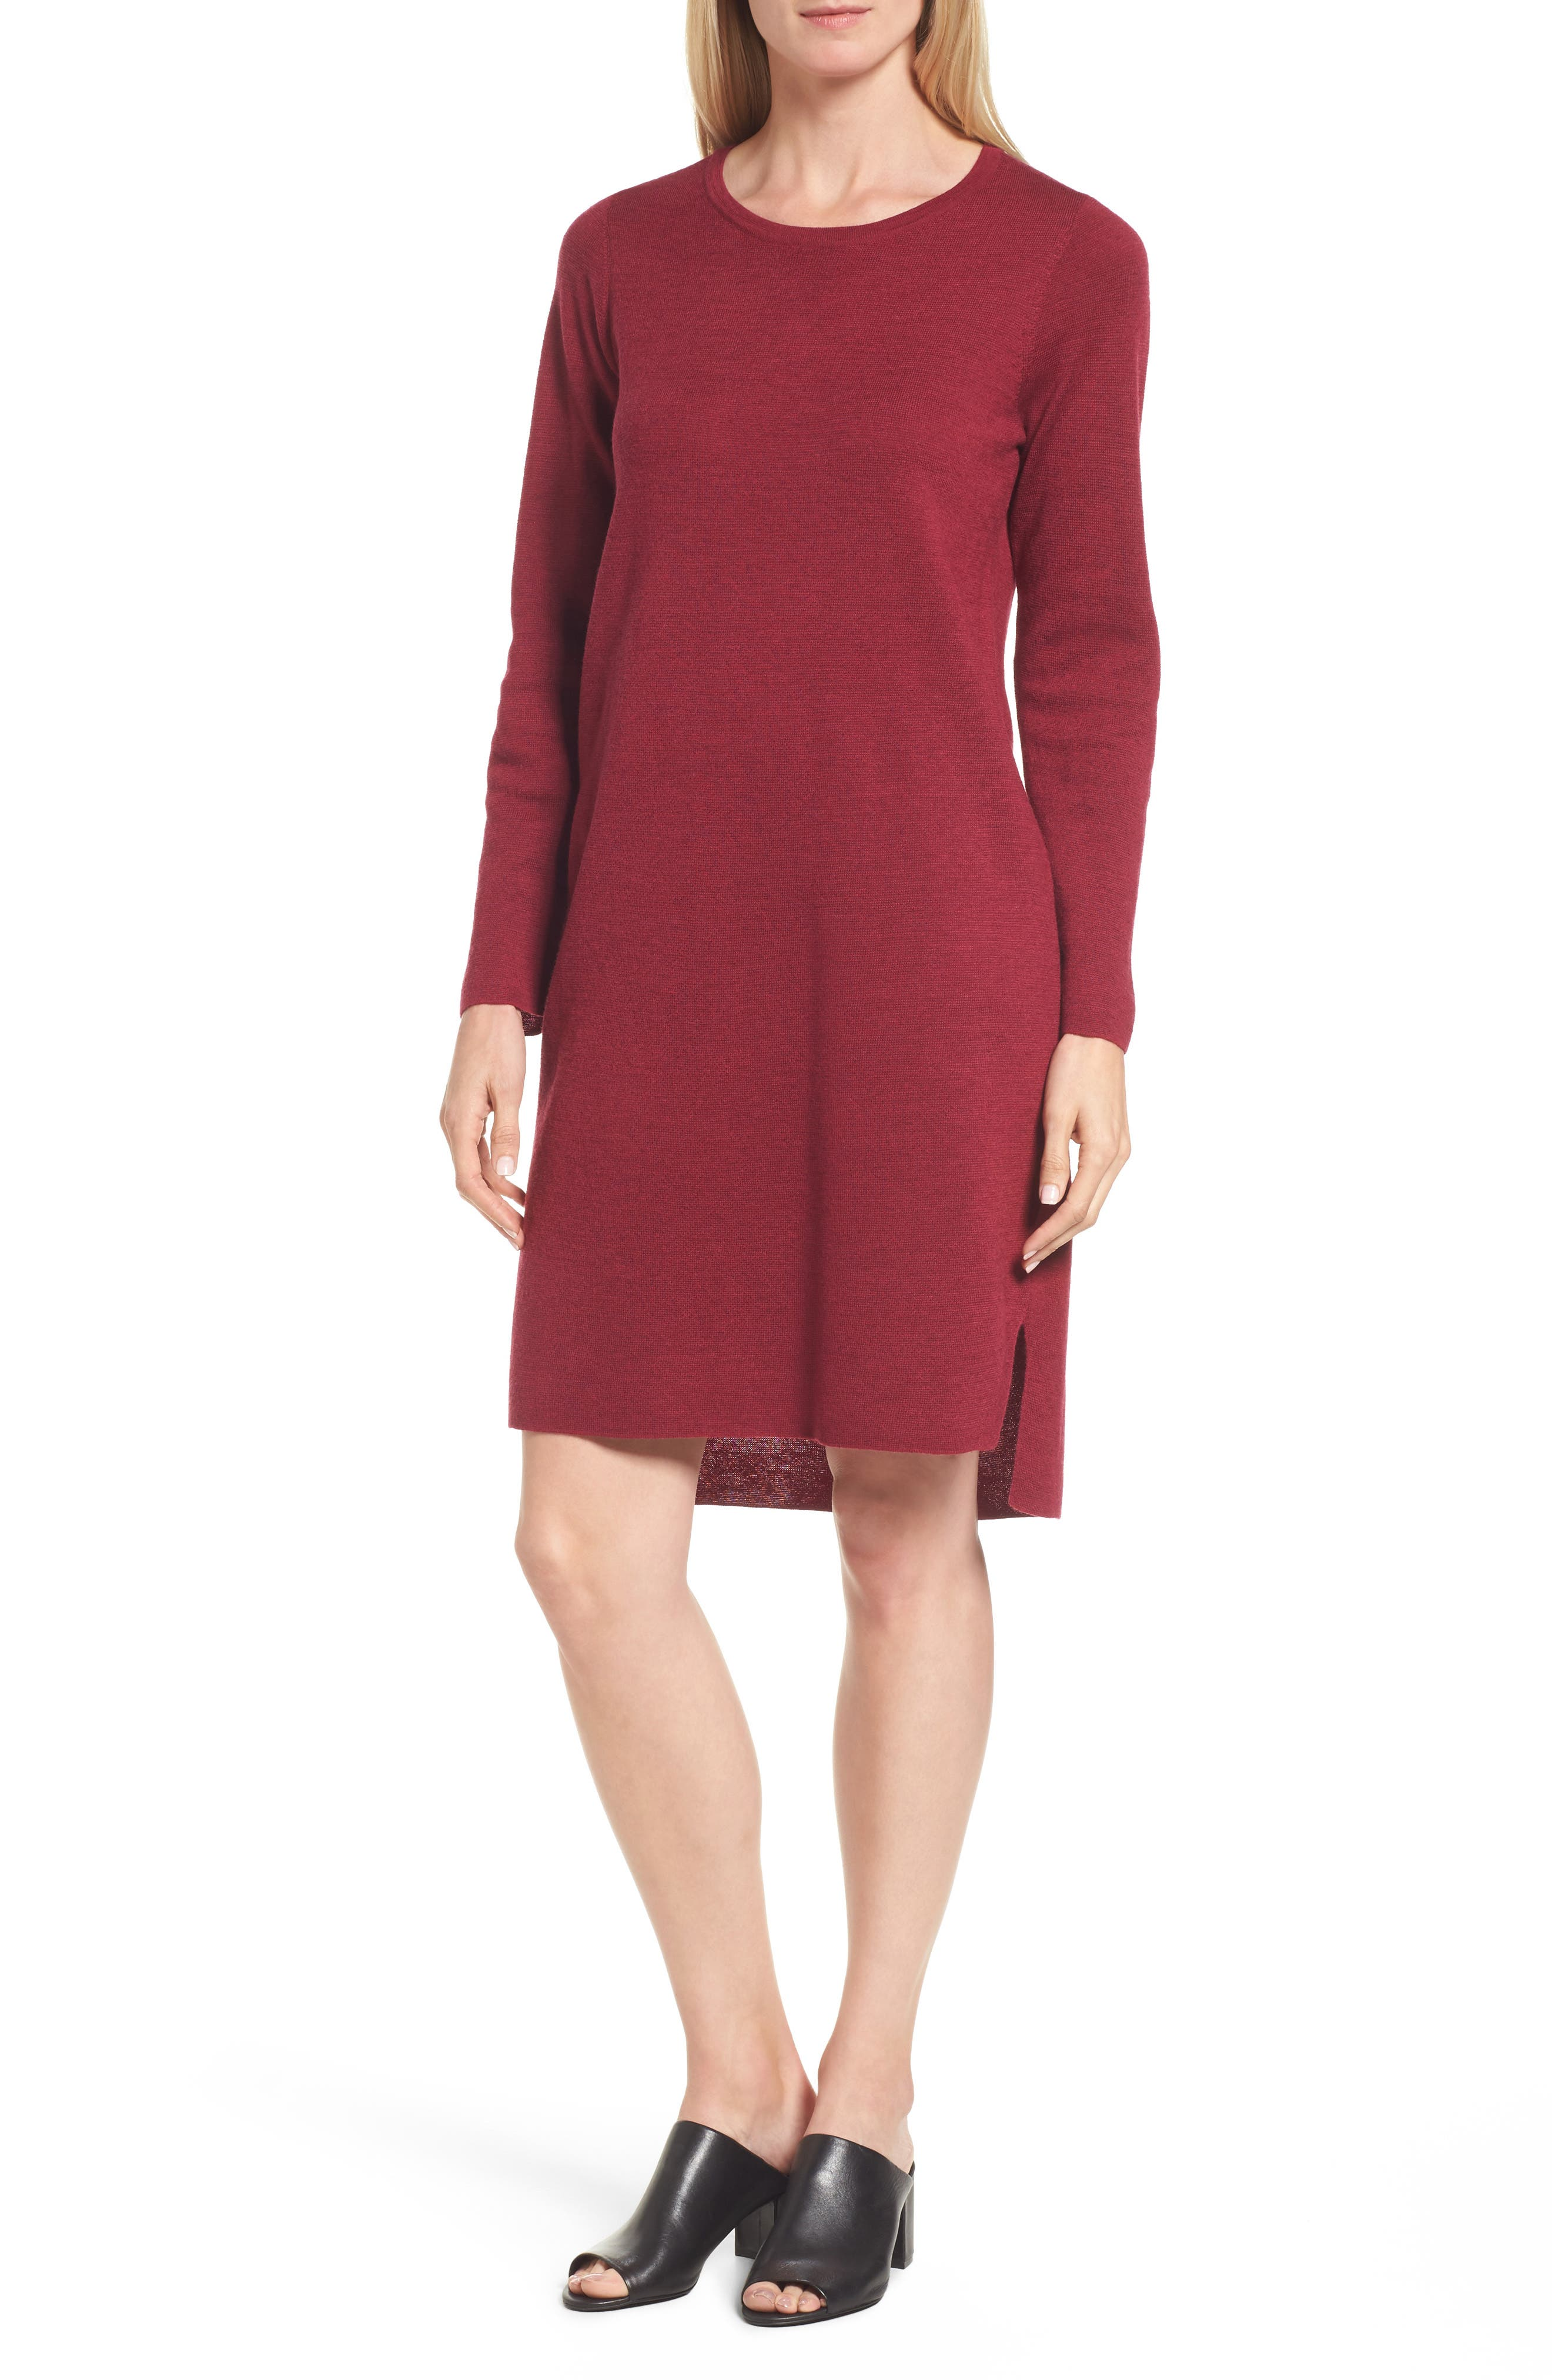 Women's Red Casual Dresses | Nordstrom